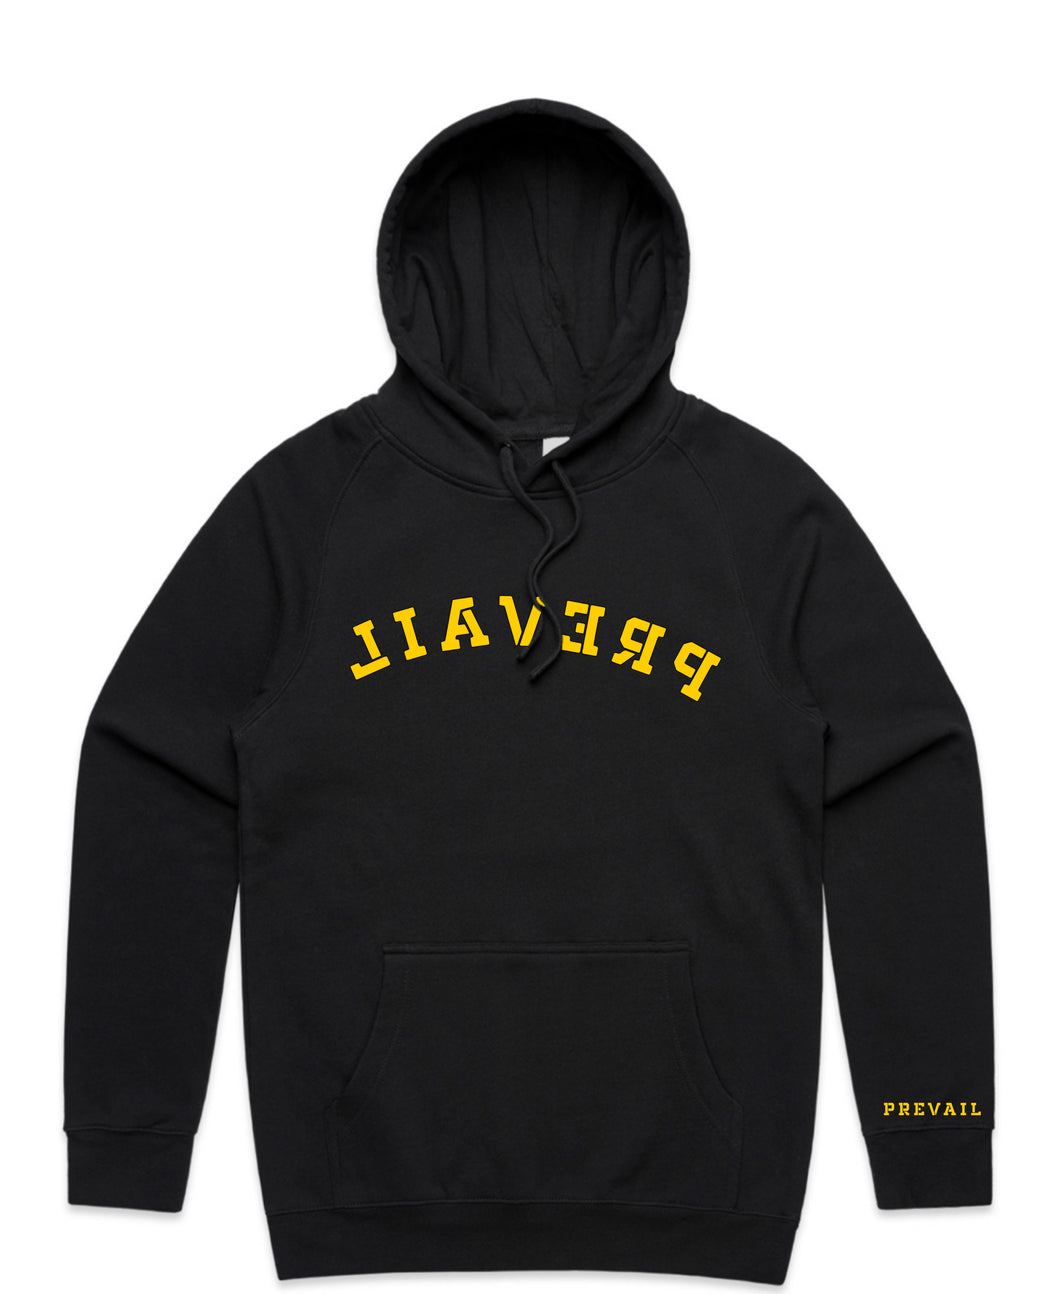 Mirror Hoodie - Blvck & Yellow